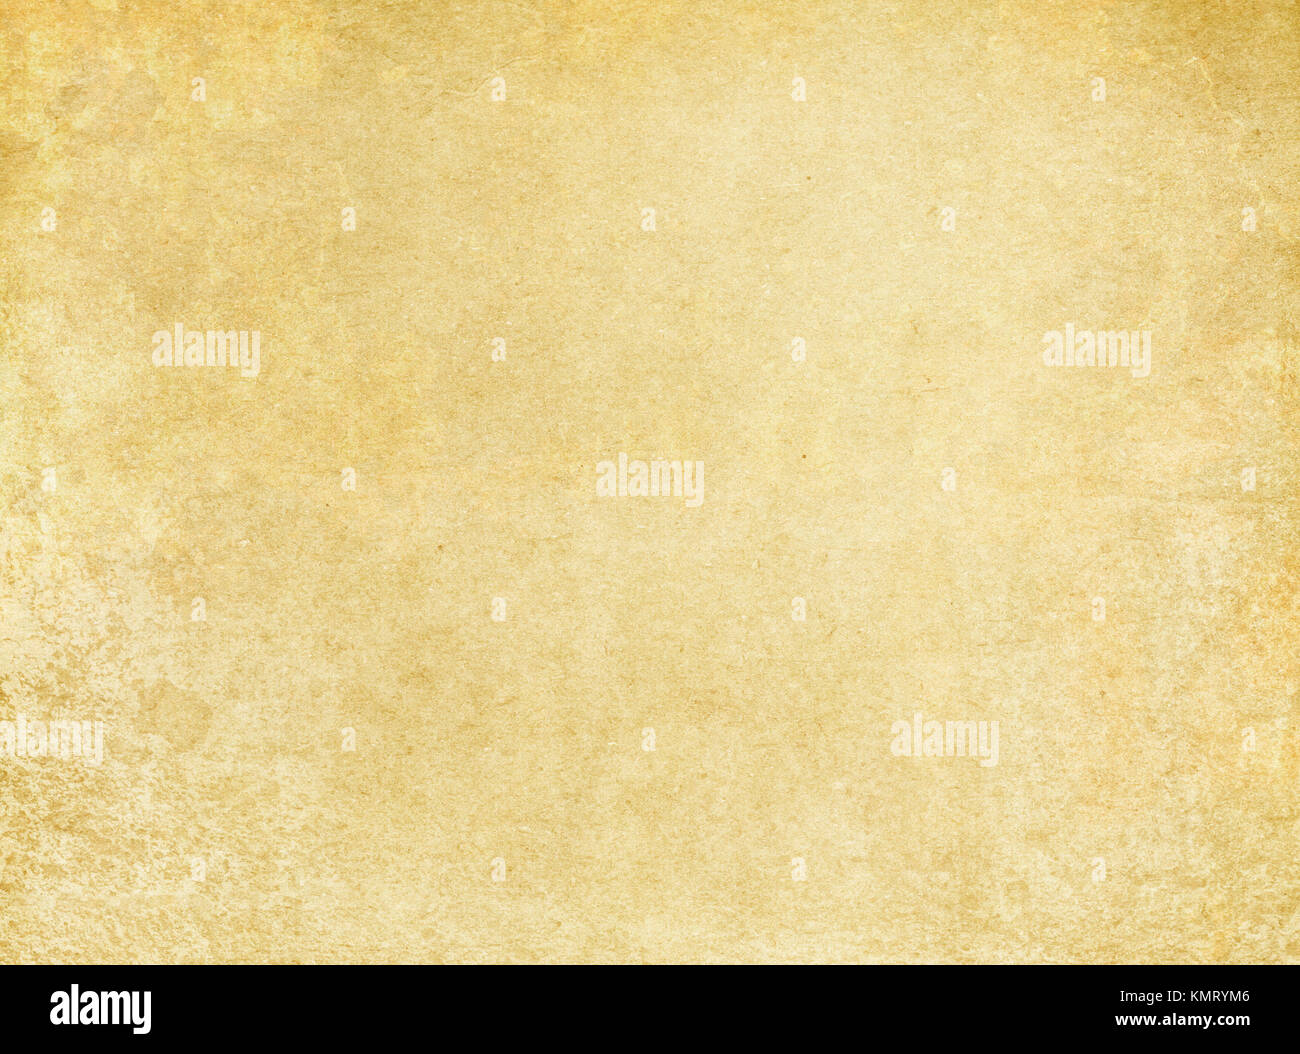 Old Yellowed Paper Background Rustic And Grunge Texture For The Design